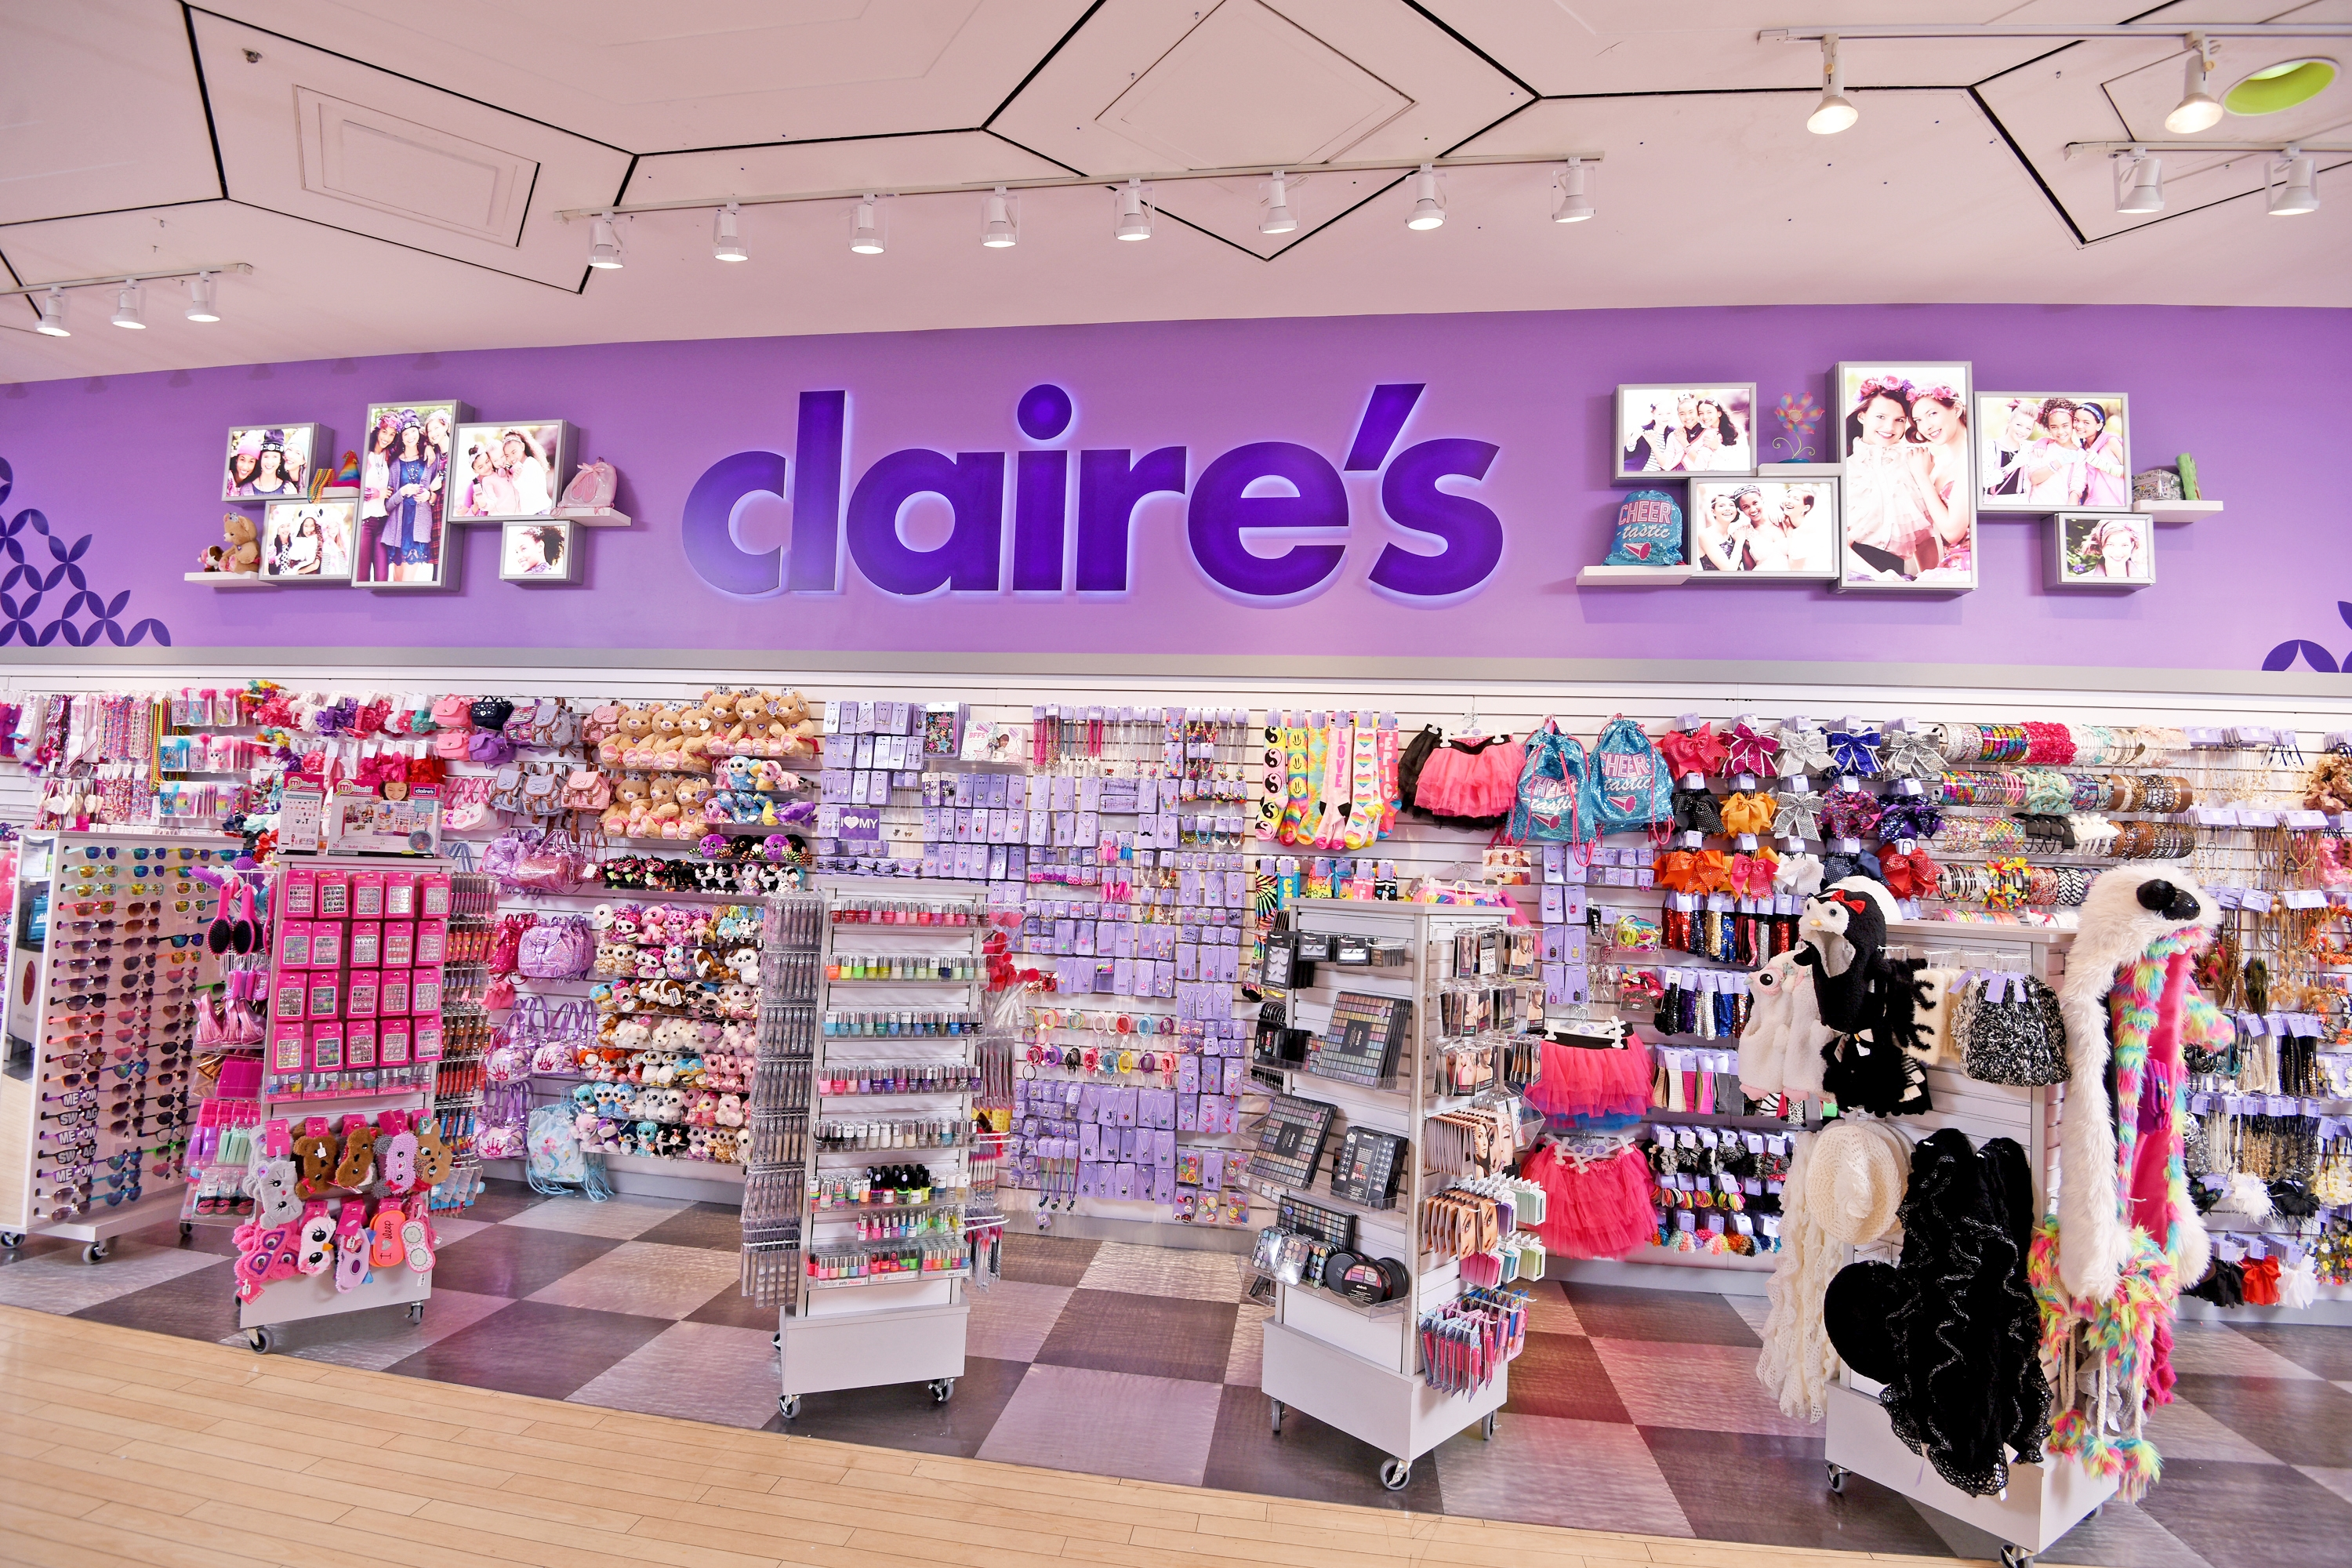 Marketing: marketinguk@dendeseabli.cf Real Estate: realestateuk@dendeseabli.cf FRANCHISE INQUIRIES Claire's Stores, Inc. Attn: Franchise W. Central Road Hoffman Estates, IL Phone: franchise@dendeseabli.cf For more information on Claire's franchise program, please click here. INVESTOR RELATIONS Claire's Stores, Inc. Attn.